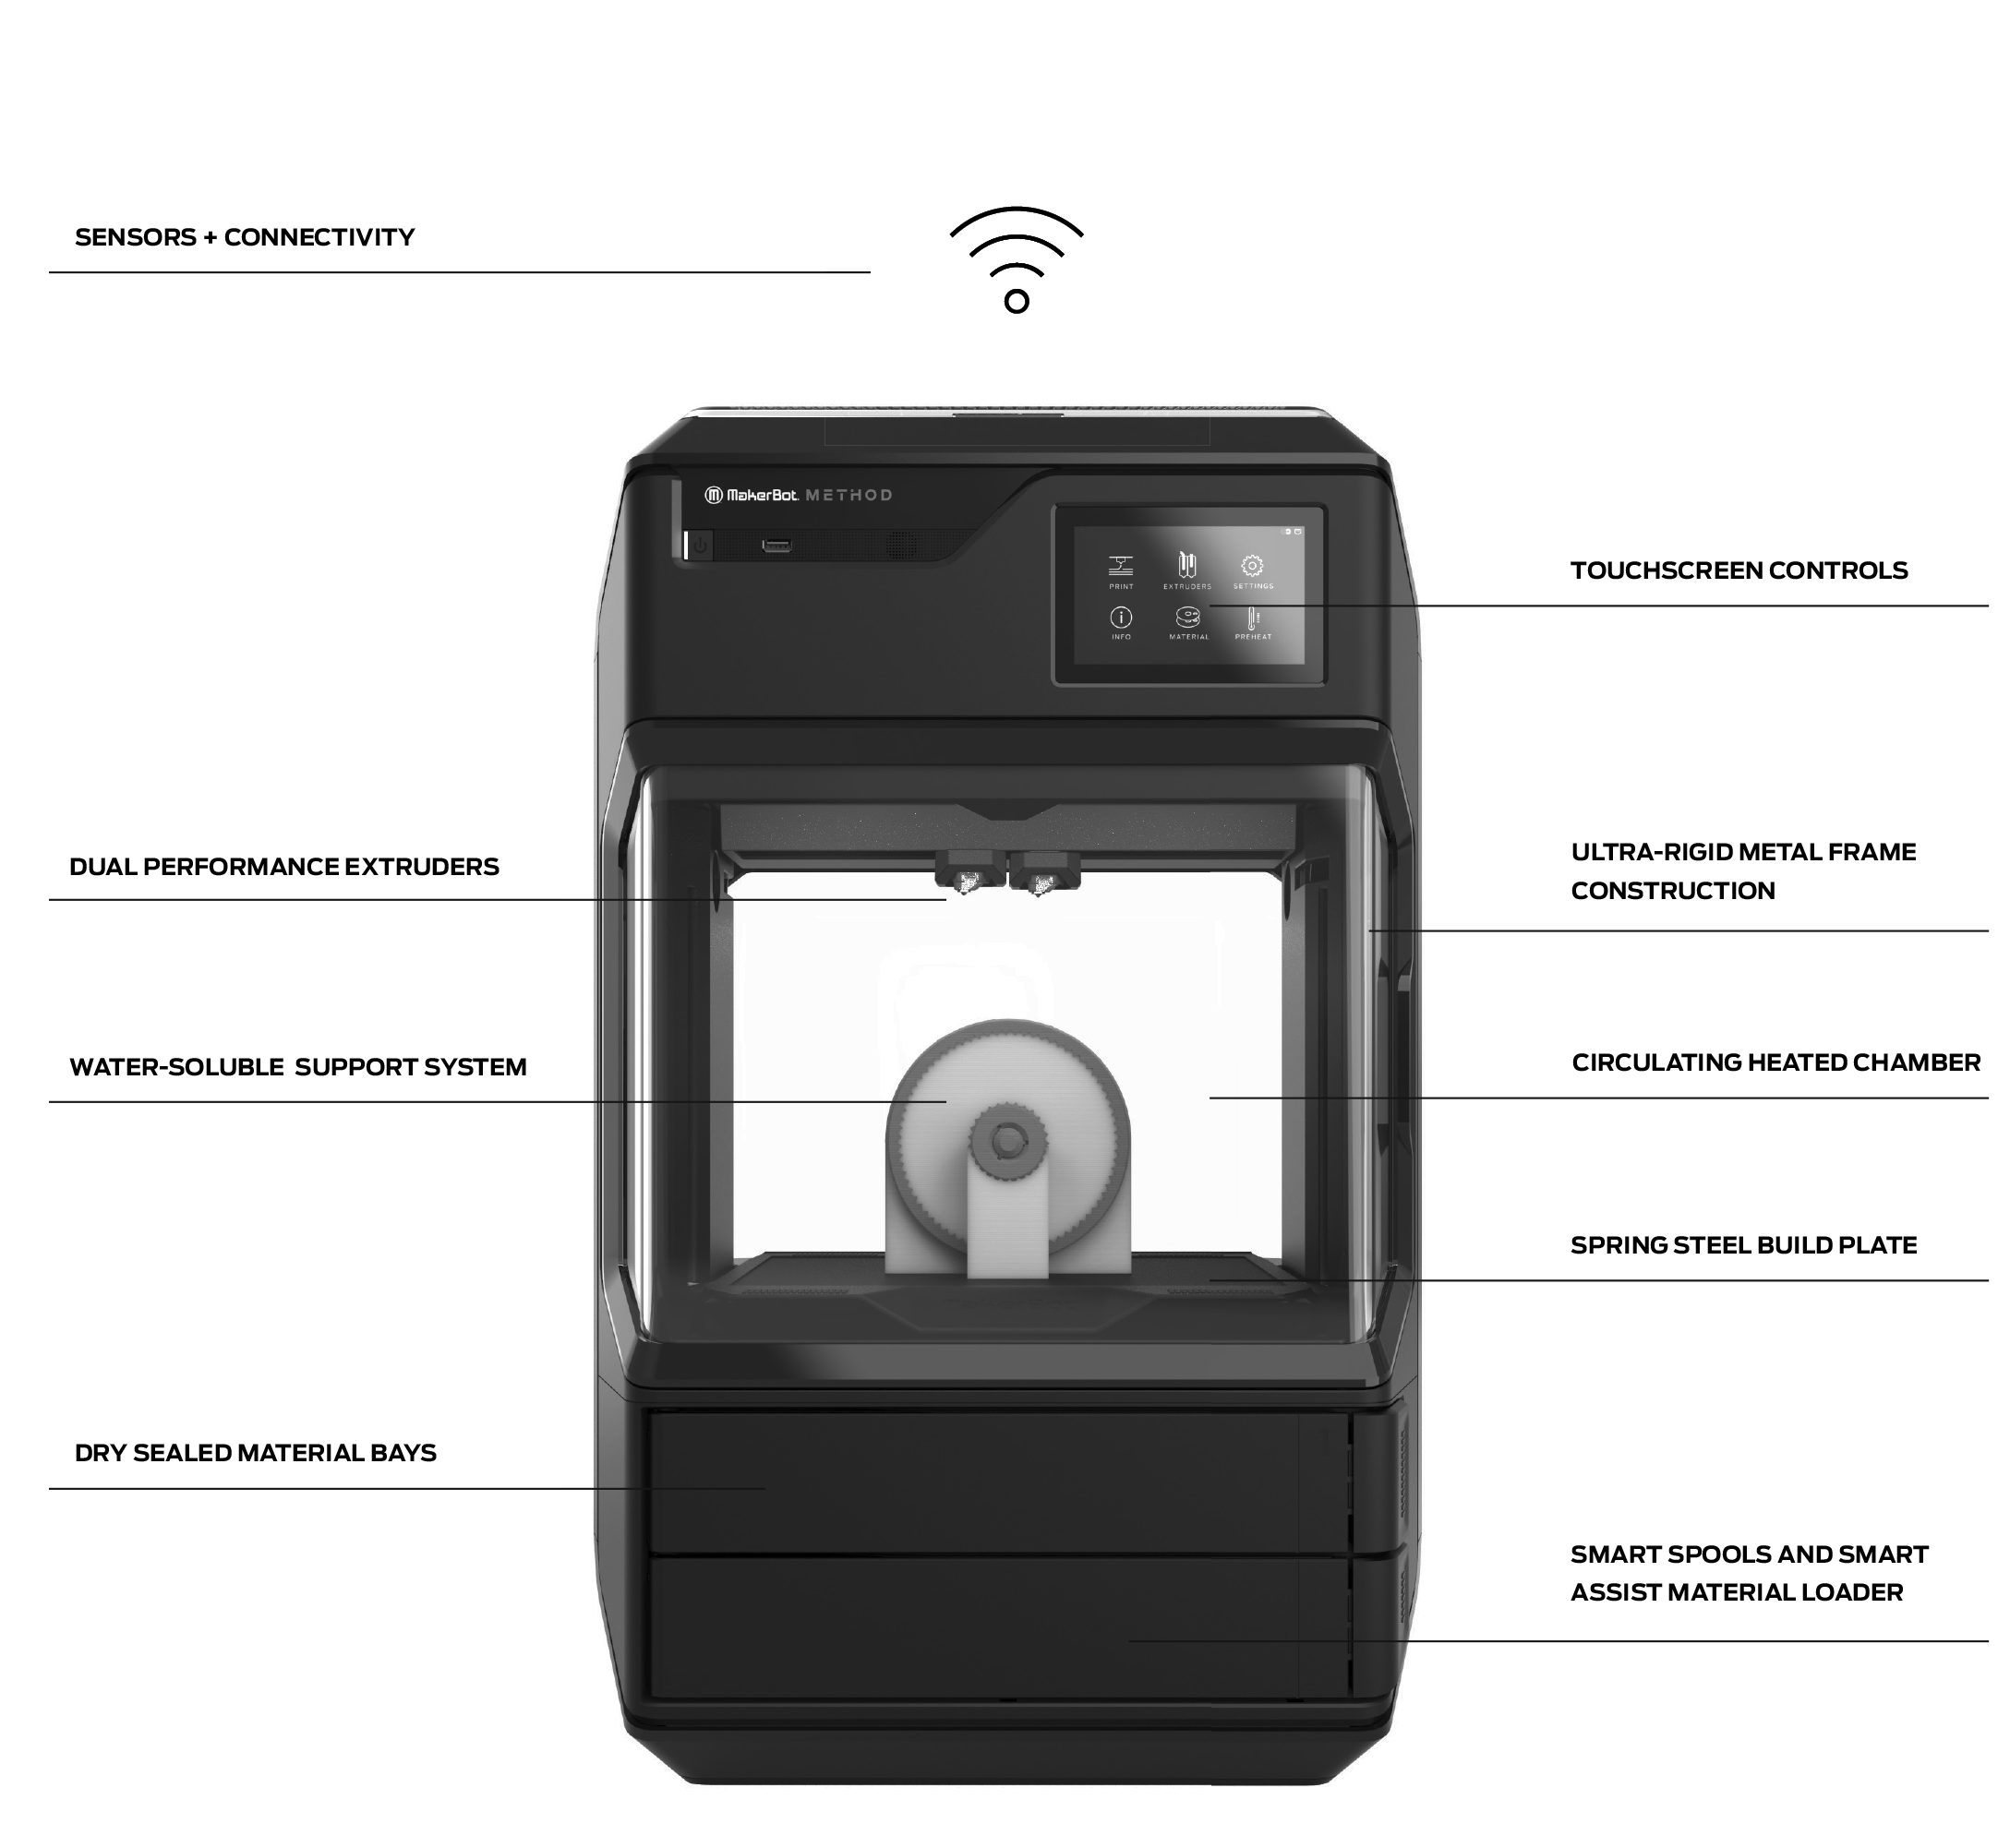 3_MakerBot_Method_Overview.png